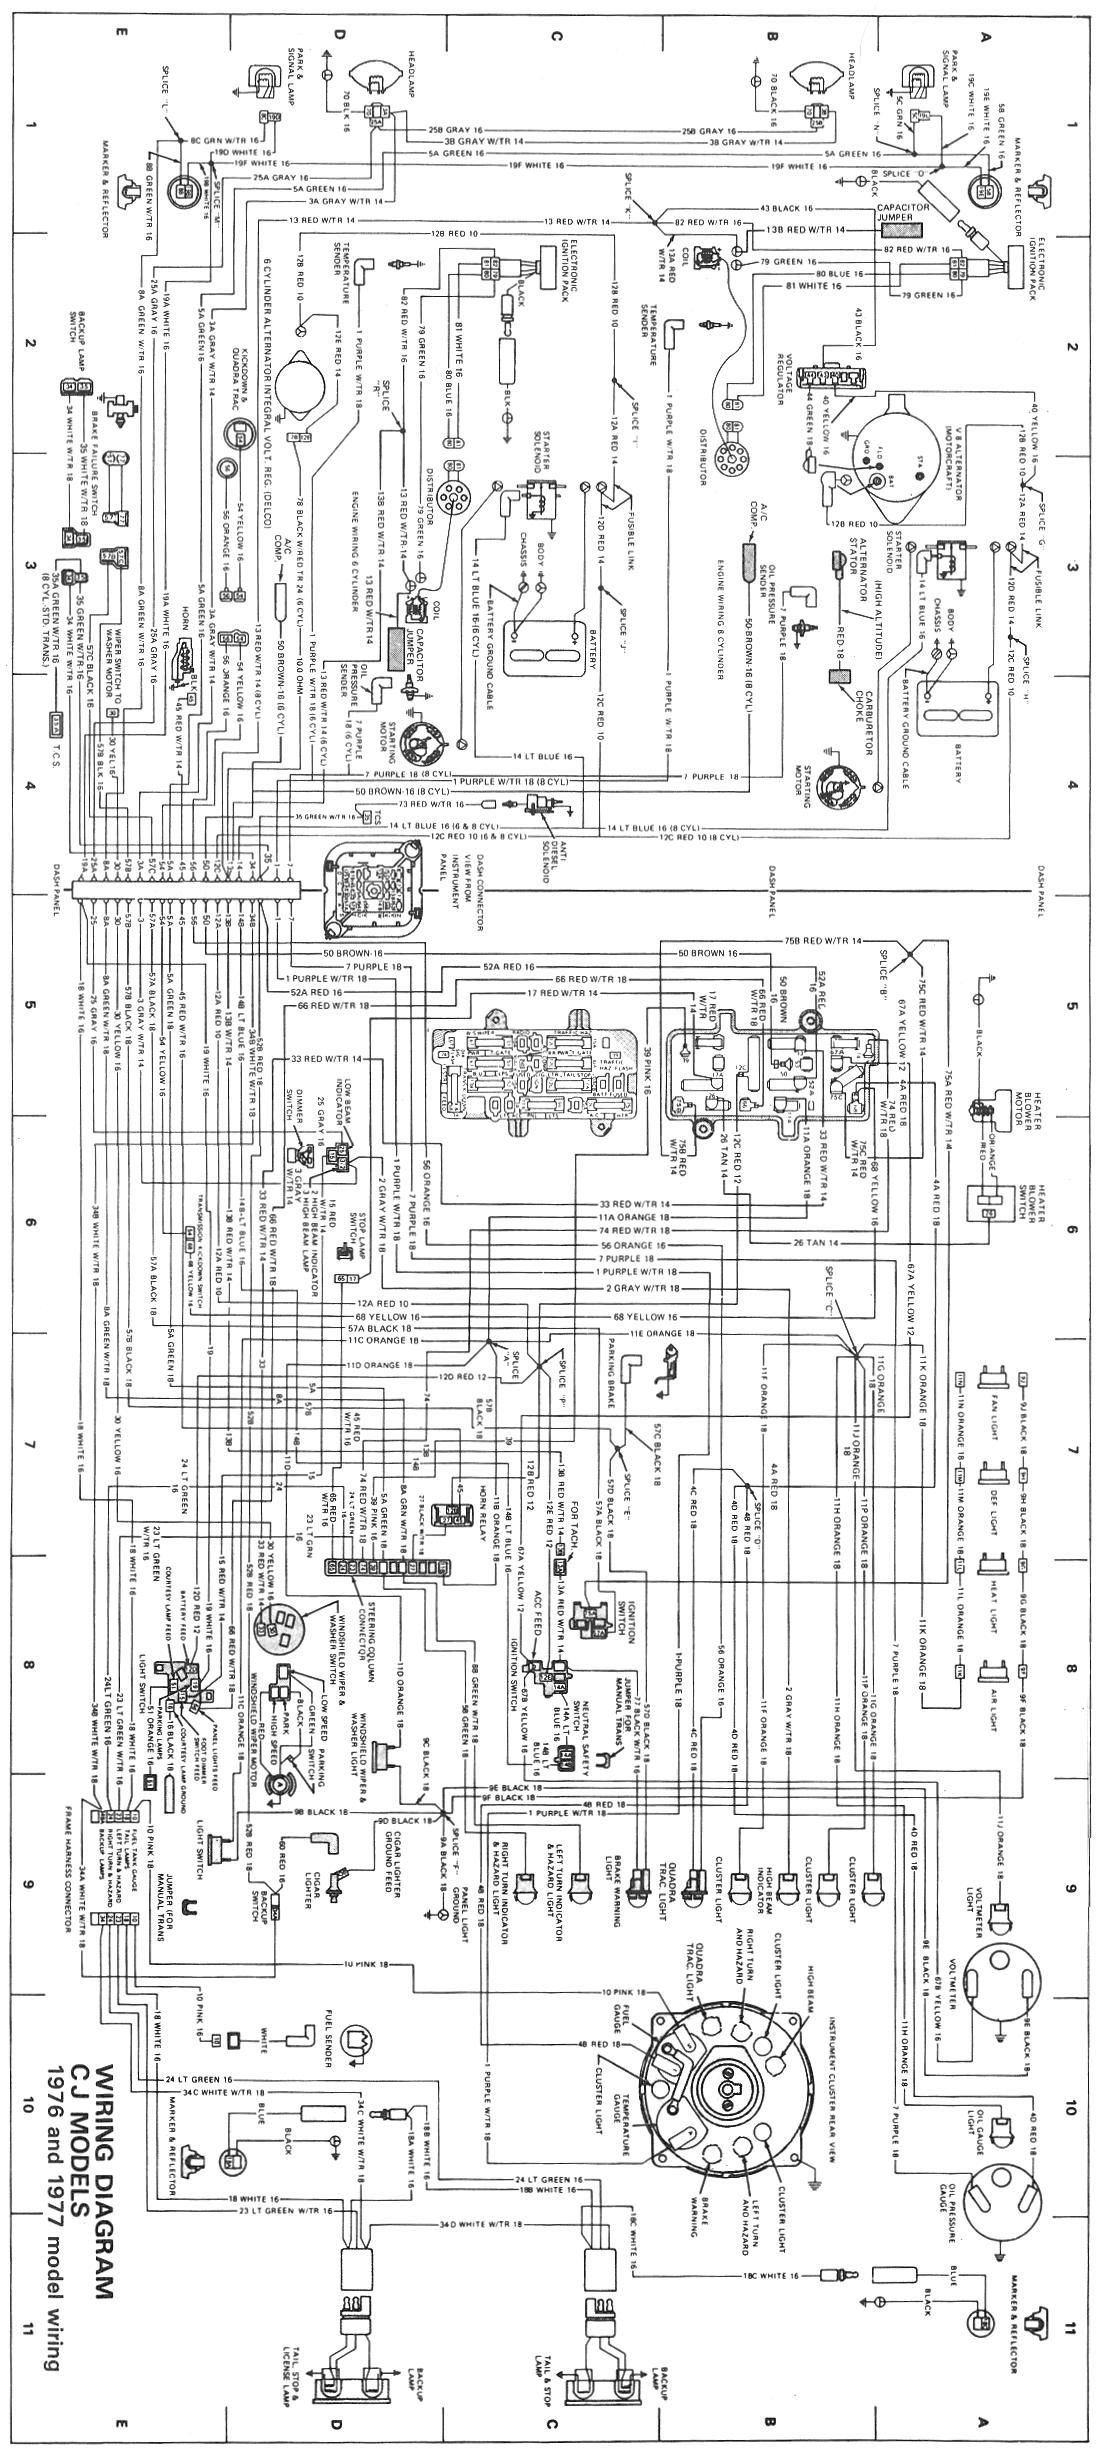 jeep electrical wiring jeep electrical wiring schematic jeep wiring diagrams - 1976 and 1977 cj | jeep wiring ...